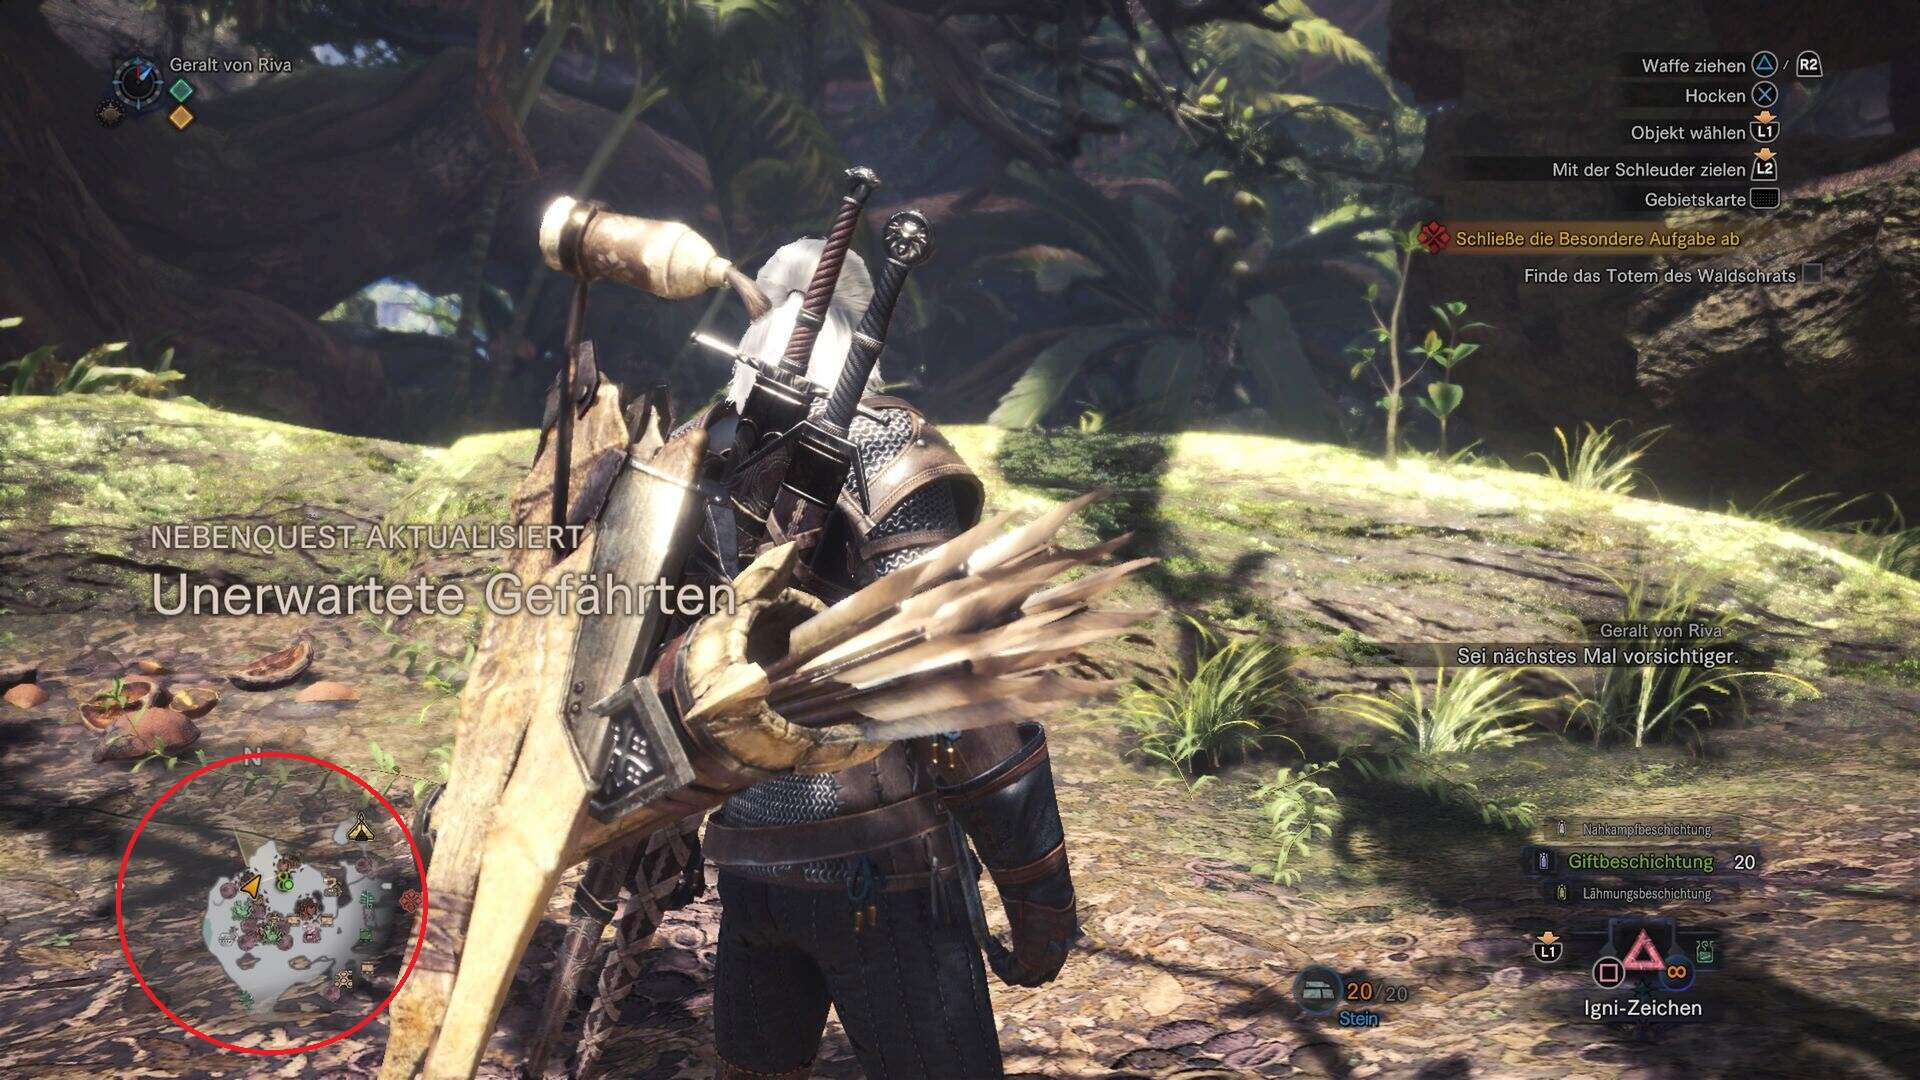 Monster Hunter World Unerwartete Gefährten Nebenquest Location